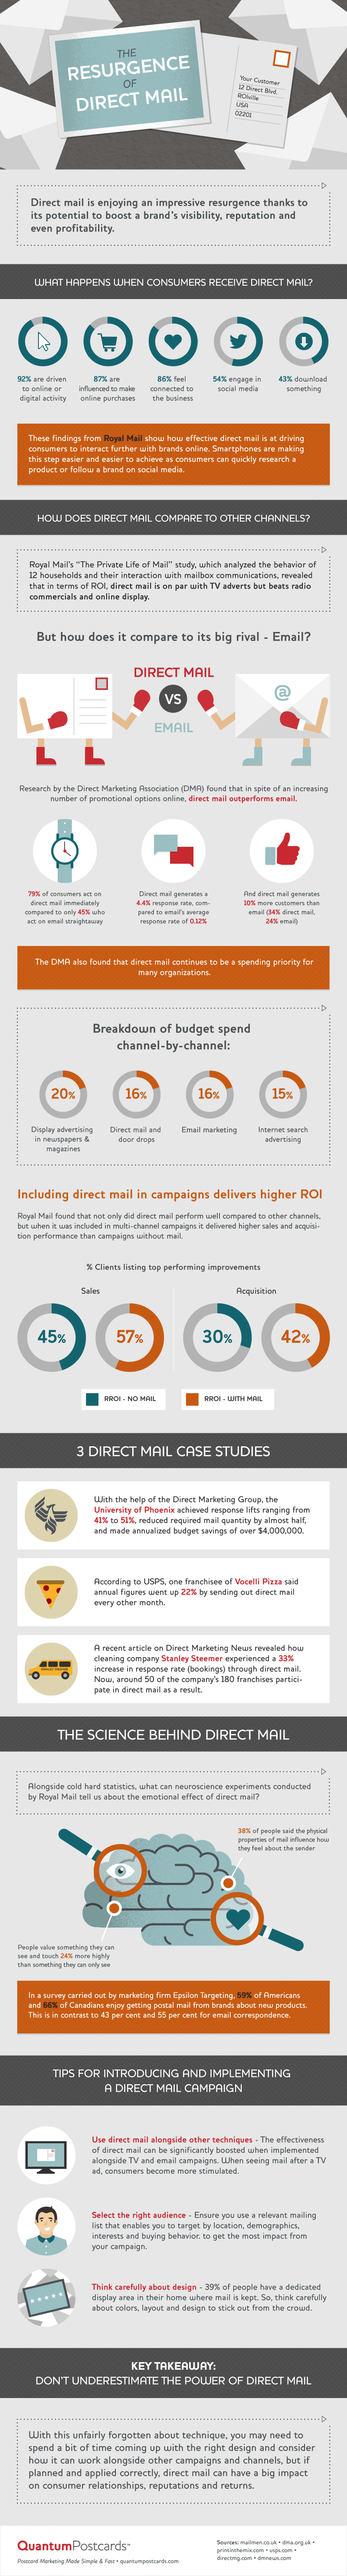 resurgence_of_direct_mail_infographic